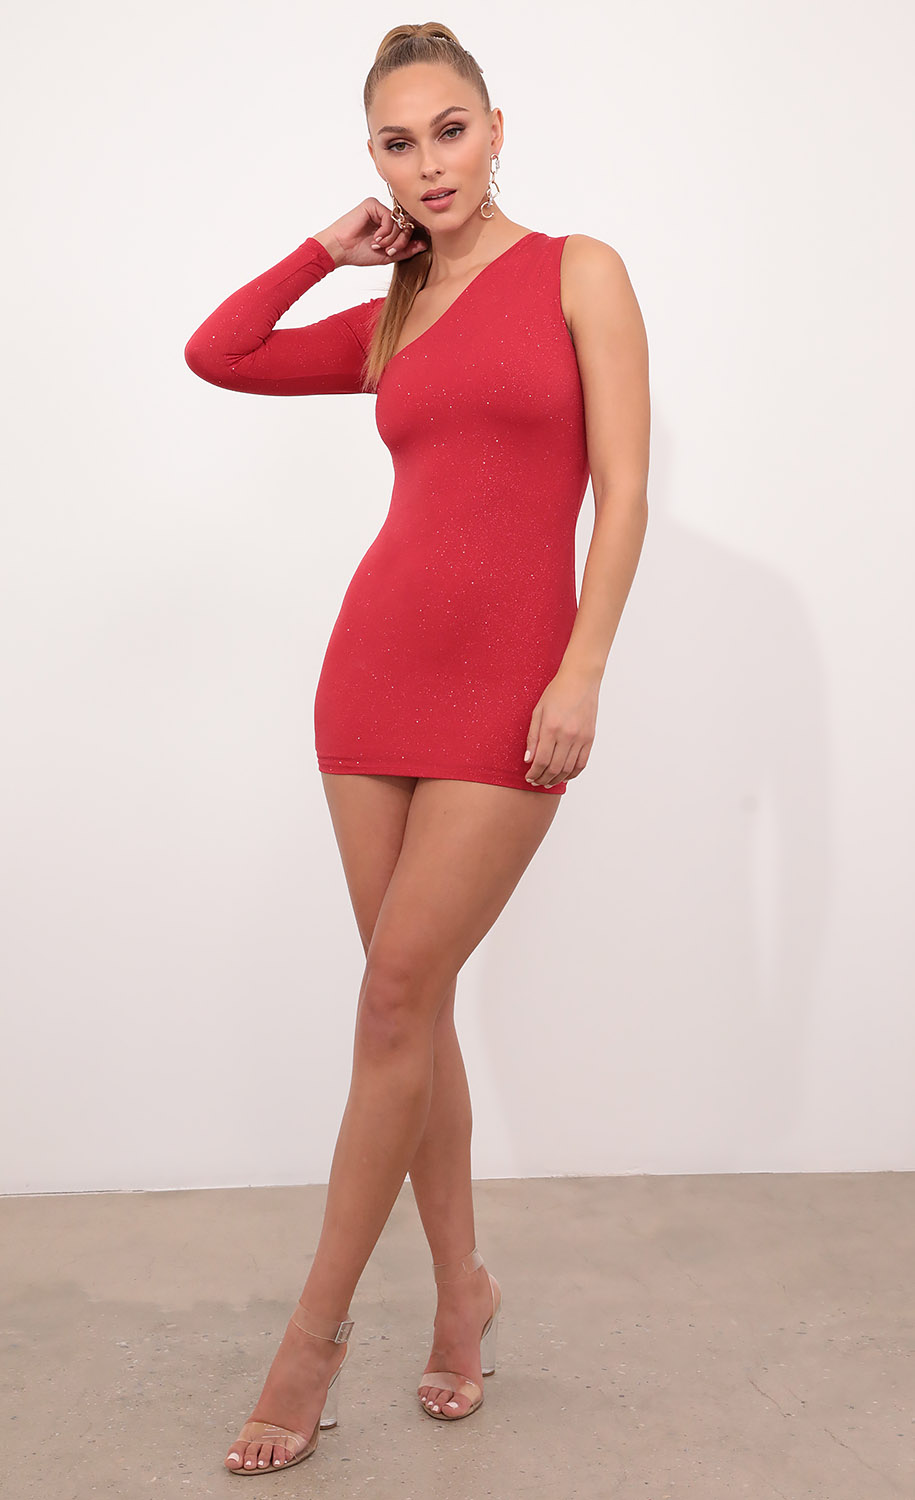 Lily Cutout One Shoulder Dress in Red Crystals